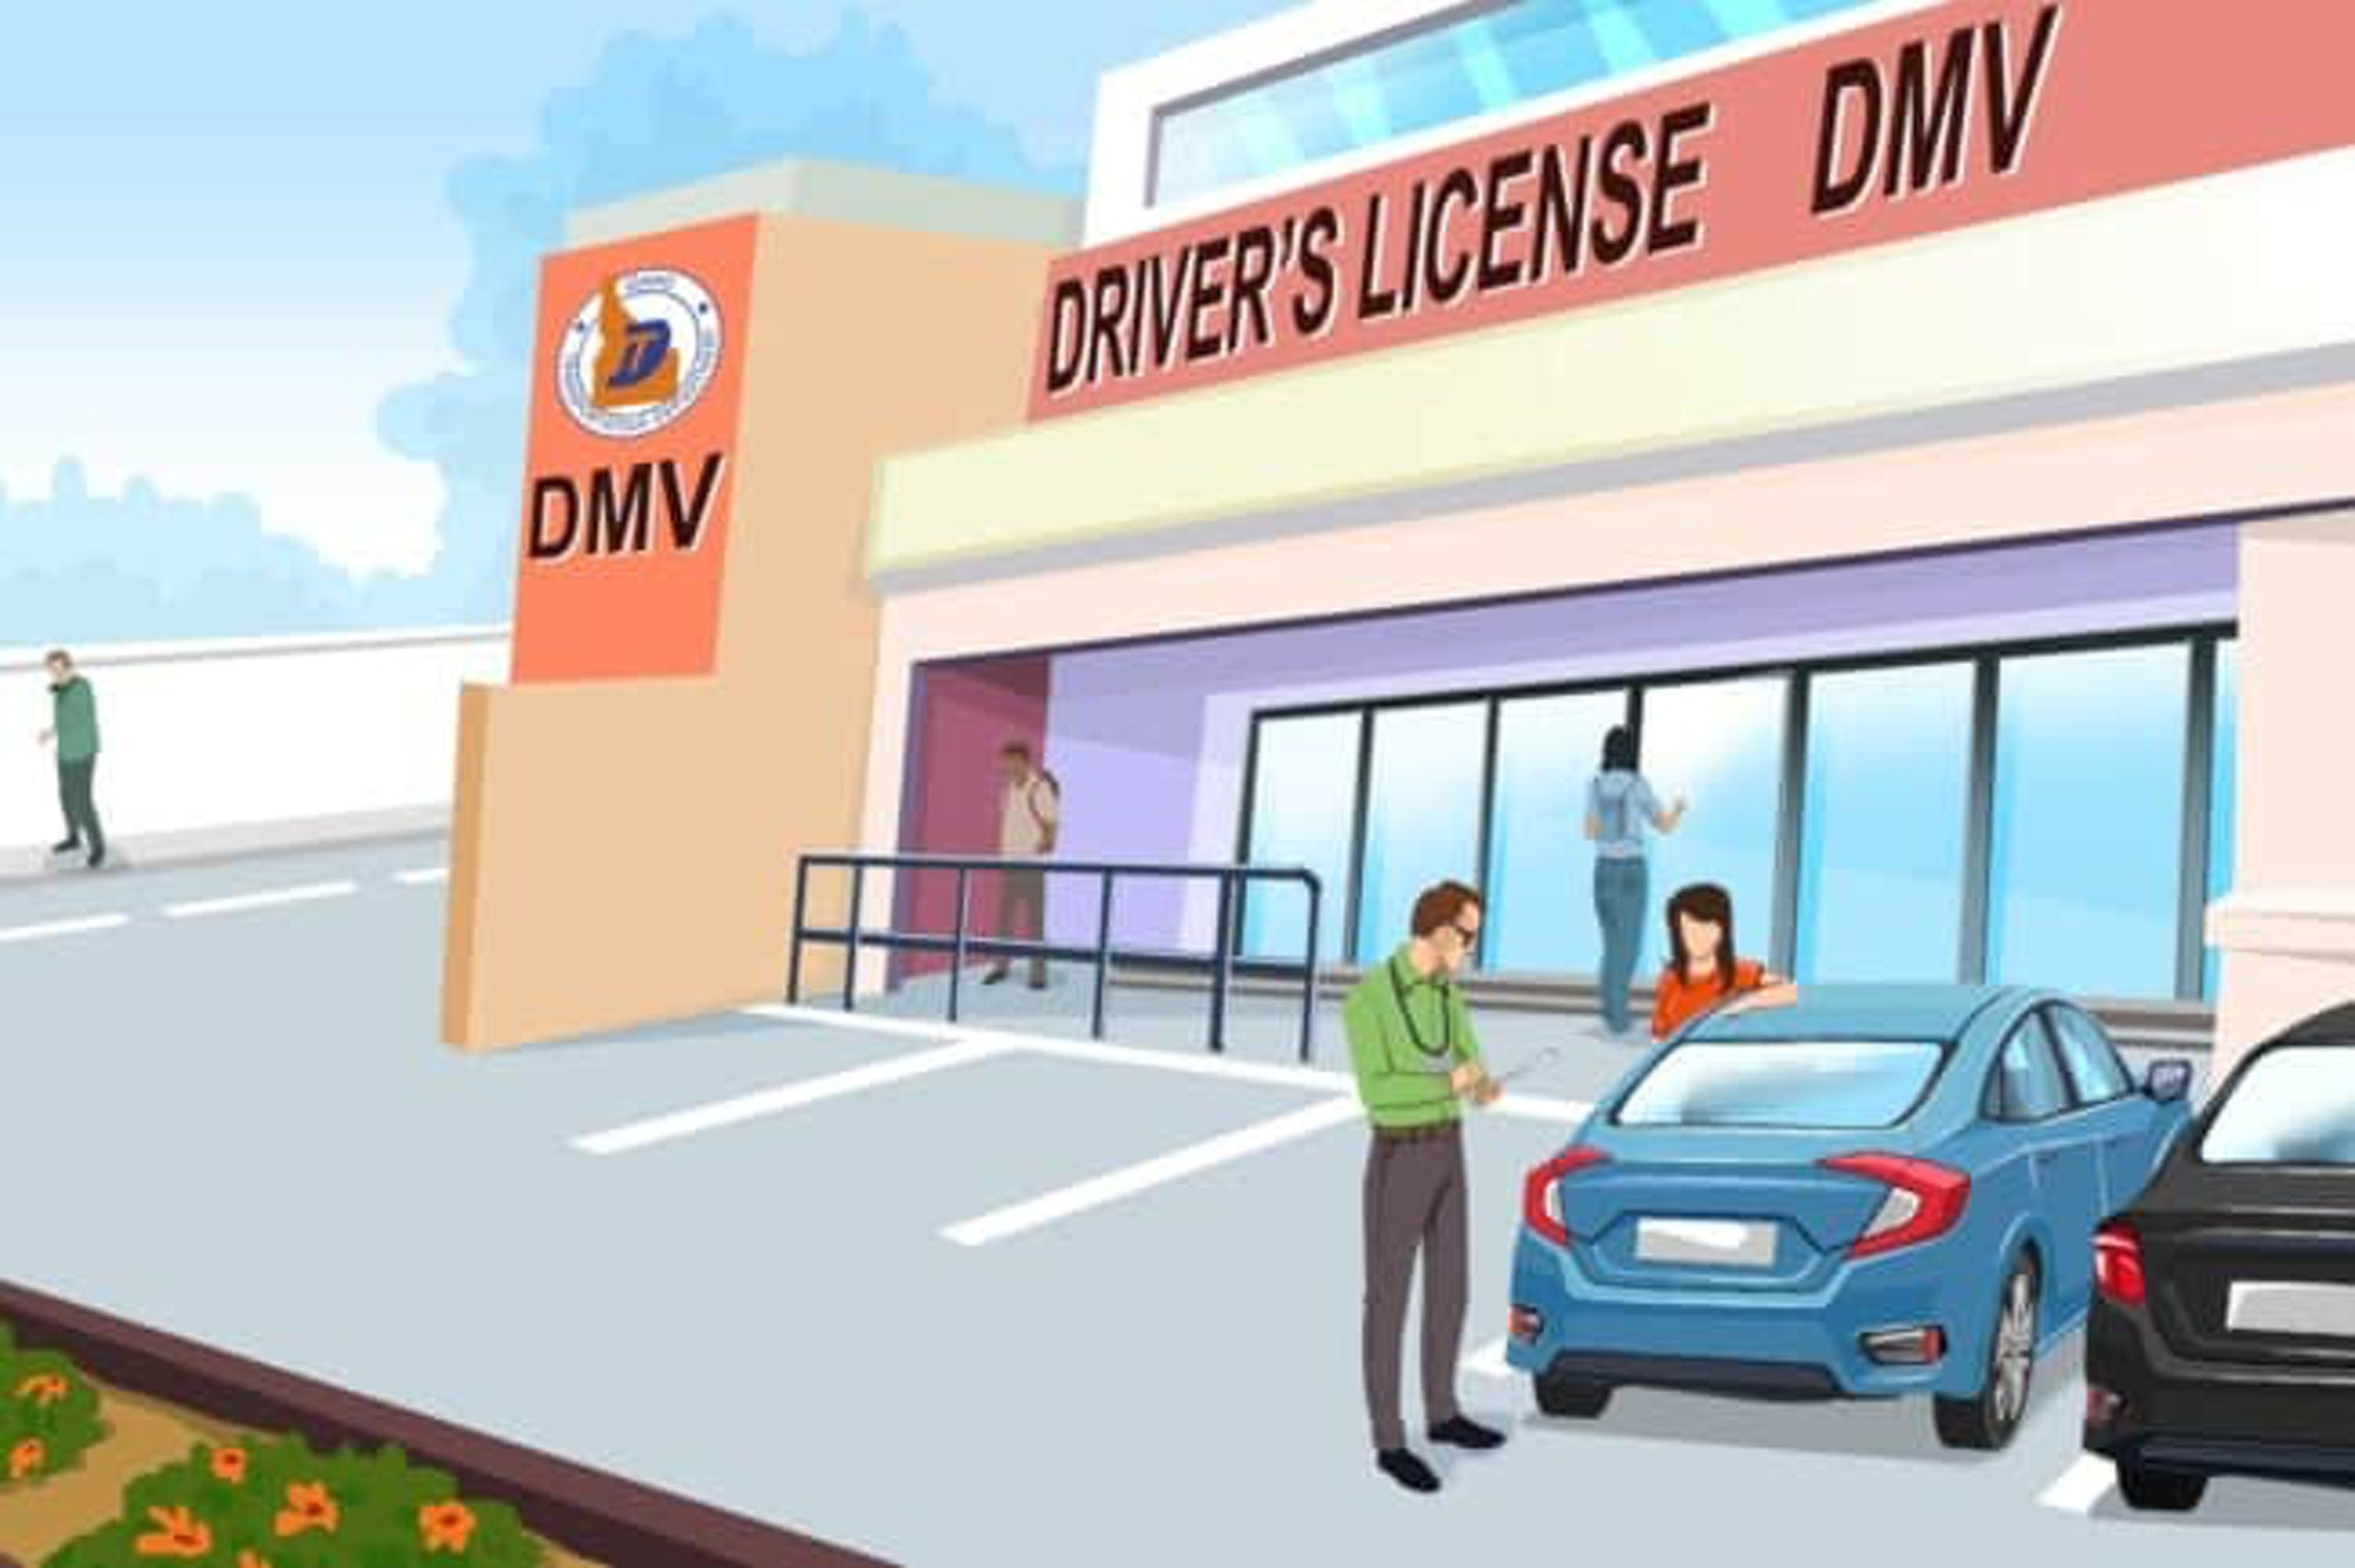 How to Get Your Idaho Driver's License in 2021 (Step-by-Step Guide)